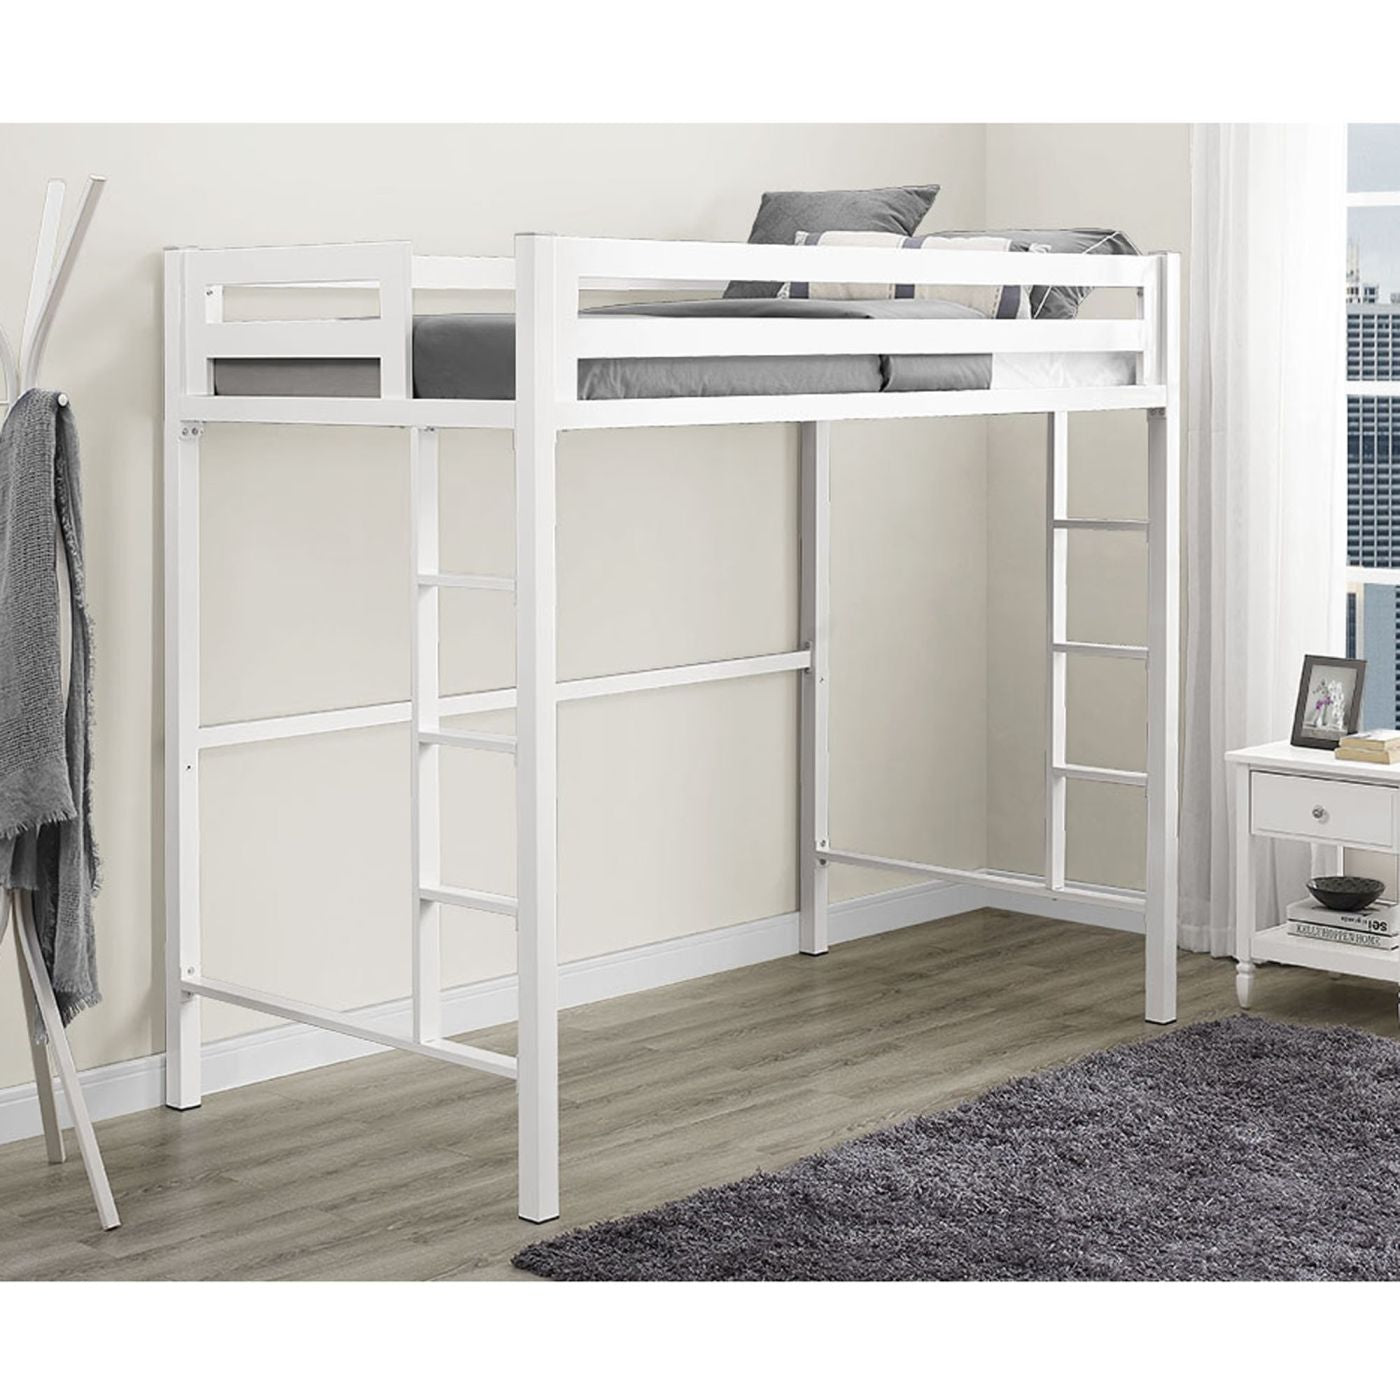 Picture of: Buy Walker Edison Btsqtolwh Bentley Twin Metal Loft Bed White At Contemporary Furniture Warehouse